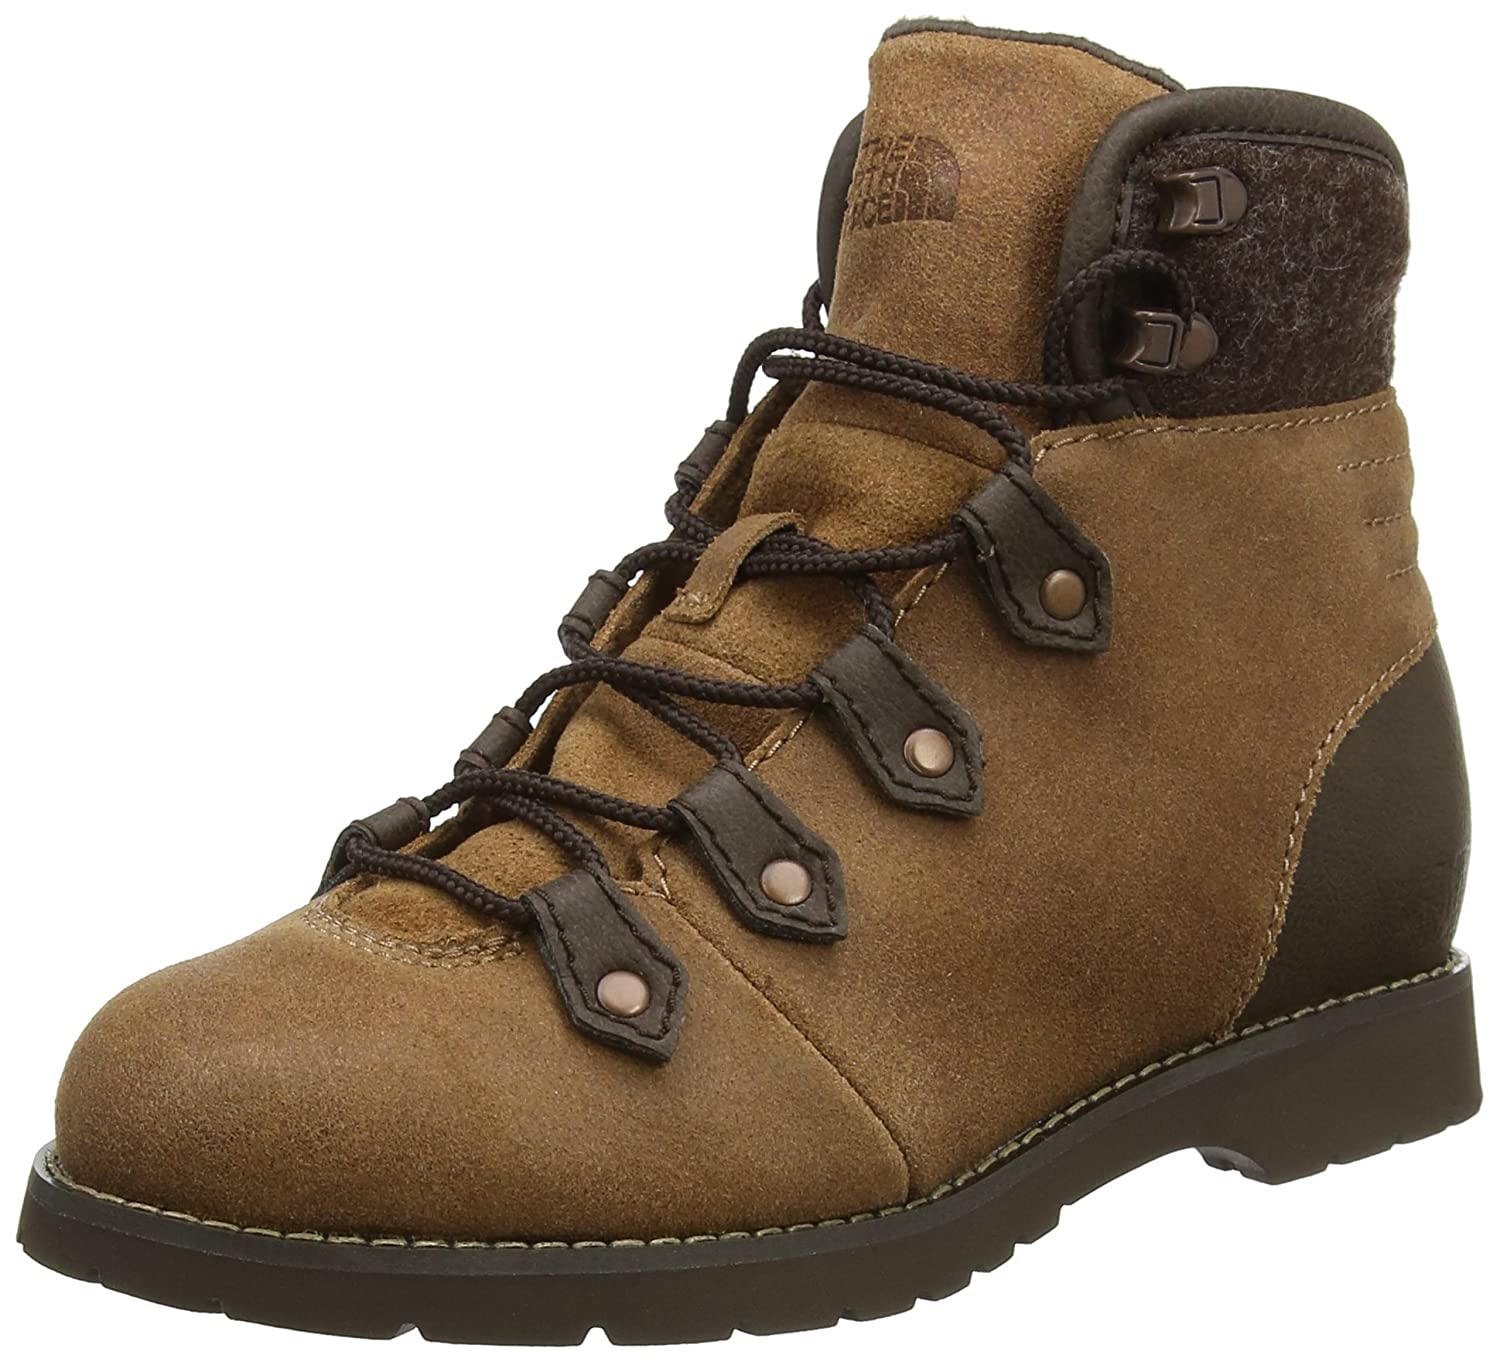 THE THE THE NORTH FACE Damen Ballard Friend Trekking-& Wanderstiefel  b0a4a6